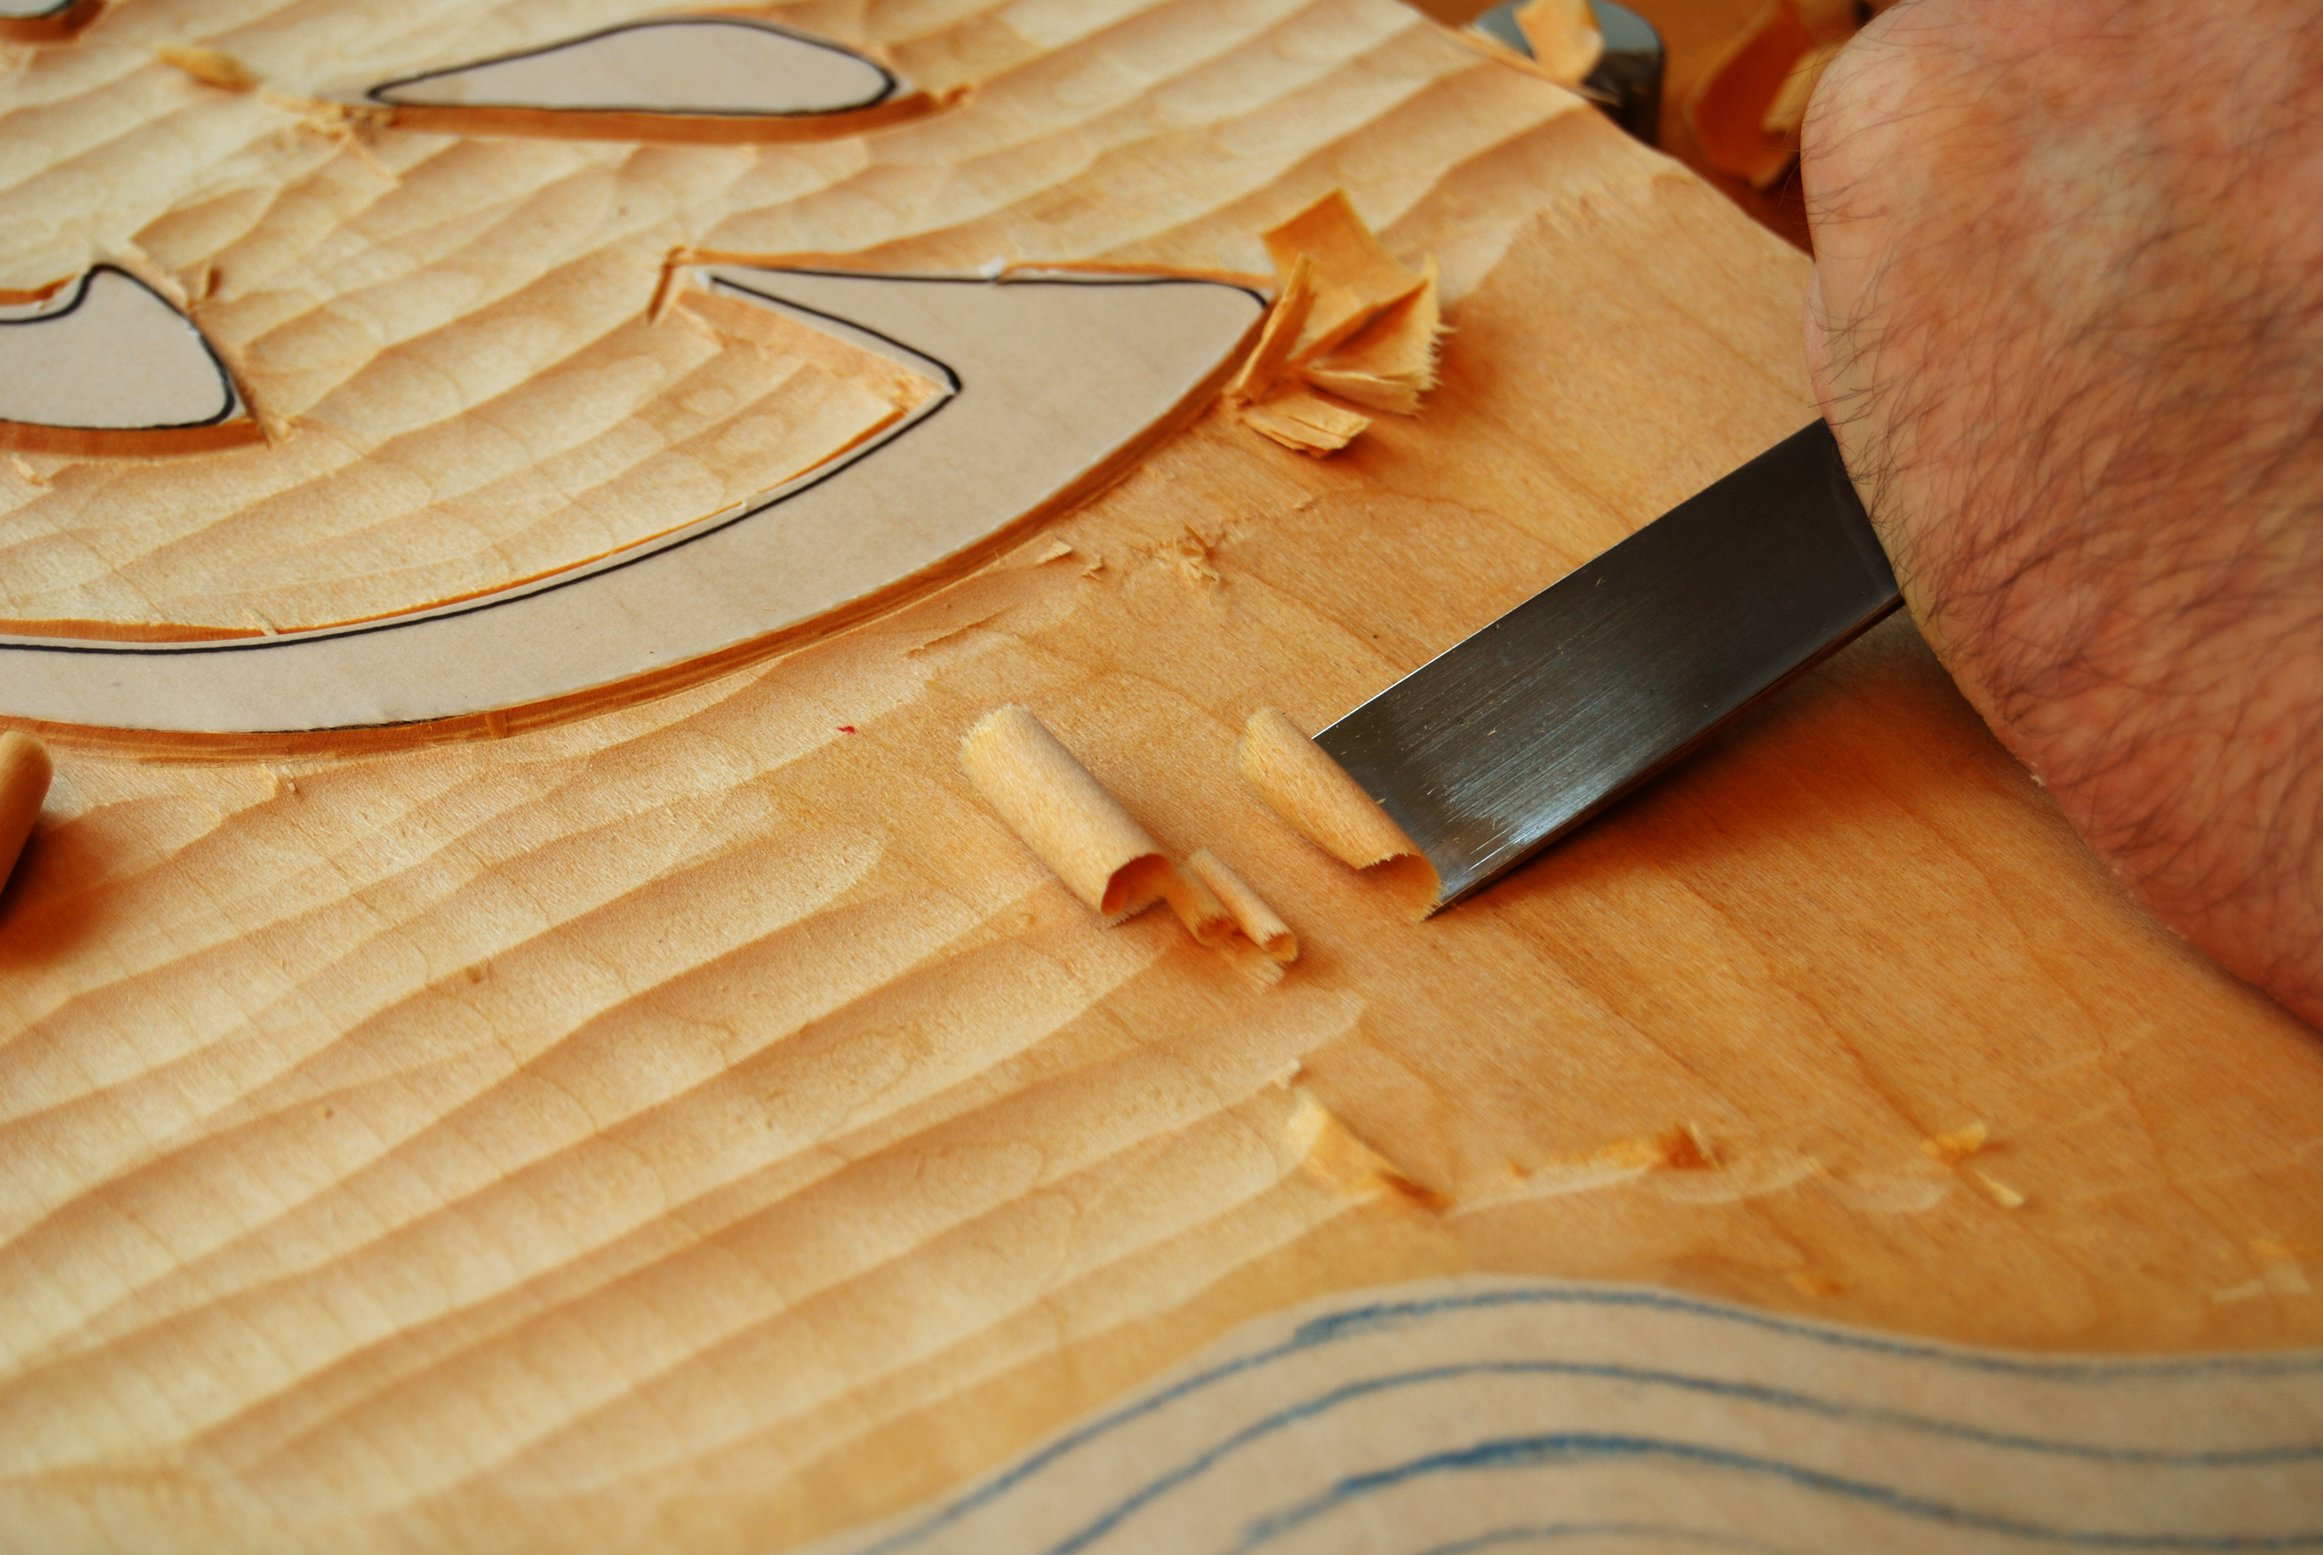 Fundamentals of chip carving fundamentals of woodworking